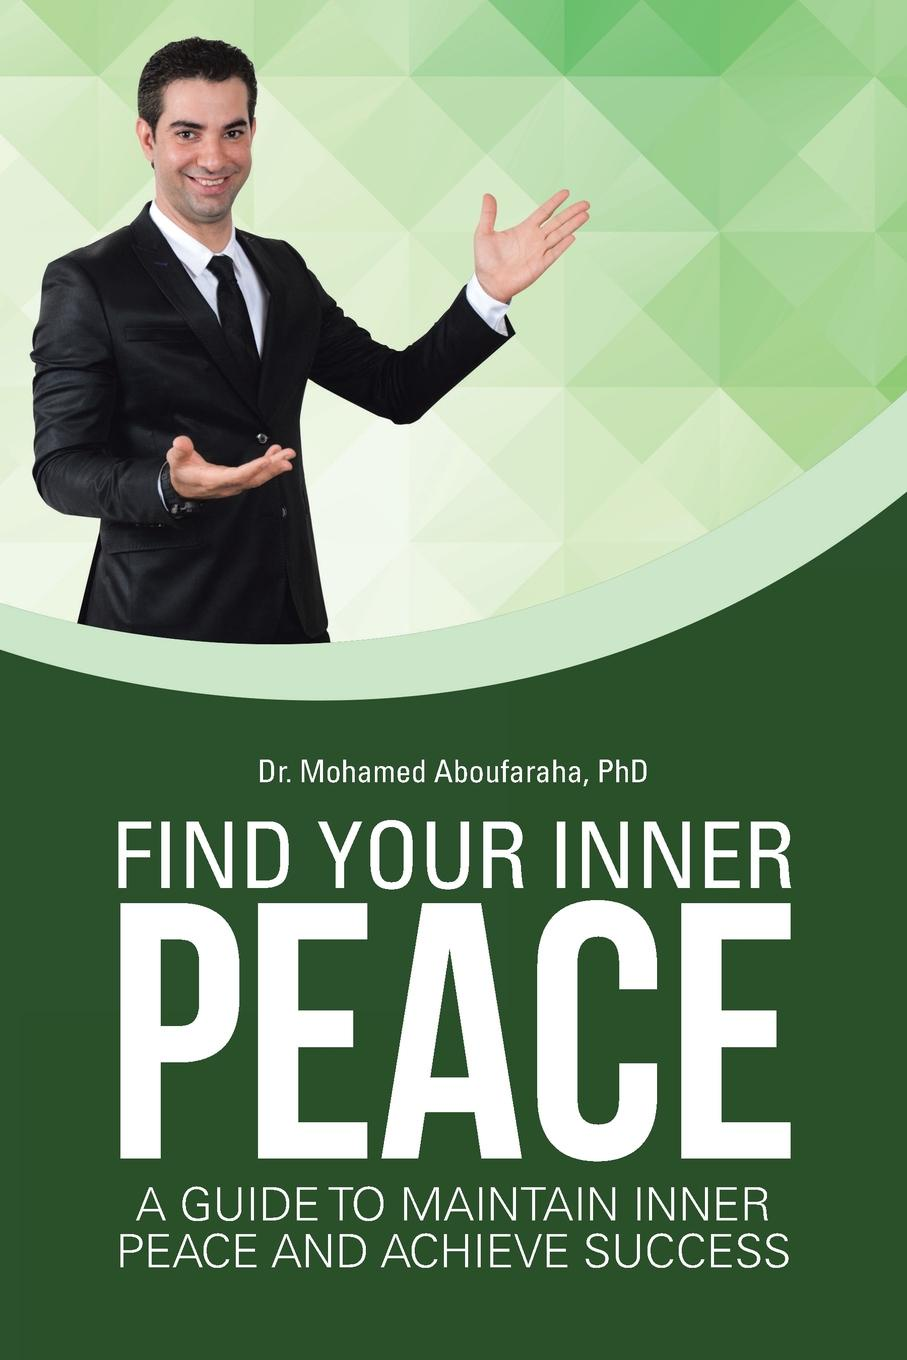 PhD Dr. Mohamed Aboufaraha Find Your Inner Peace. A Guide to Maintain Inner Peace and Achieve Success цена